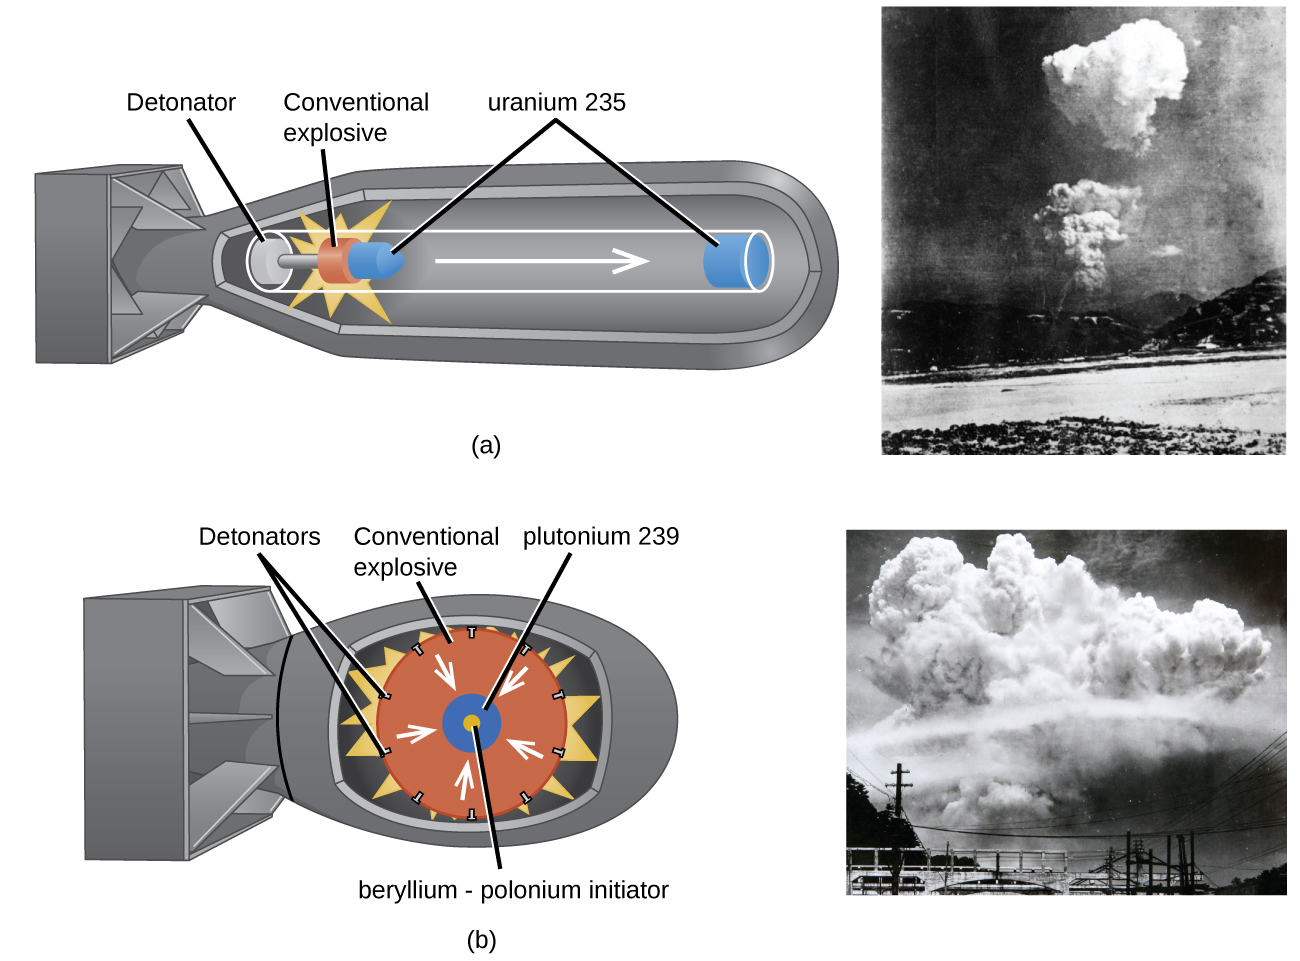 "Two diagrams are shown, each to the left of a photo, and labeled ""a"" and ""b."" Diagram a shows the outer casing of a bomb that has a long, tubular shape with a squared-off tail. Components in the shell show a tube with a white disk labeled ""Detonator"" on the left, an orange disk with a bright yellow starburst drawn around it labeled ""Conventional explosive"" in the middle and a right-facing arrow leading to a blue disk in the nose of the bomb labeled ""uranium 235."" A small blue cone next to the orange disk is shares the label of ""uranium 235."" A black and white photo next to this diagram shows a far-off shot of a rising cloud over a landscape. Diagram b shows the outer casing of a bomb that has a short, rounded shape with a squared-off tail. Components in the shell show a large orange circle labeled ""Conventional explosive"" with a series of black dots around its edge, labeled ""Detonators,"" and a yellow starburst behind it. White arrows face from the outer edge of the orange circle to a blue circle in the center with a yellow core. The blue circle is labeled ""plutonium 239"" while the yellow core is labeled ""beryllium, dash, polonium initiator."" A black and white photo next to this diagram shows a far-off shot of a giant rising cloud over a landscape."